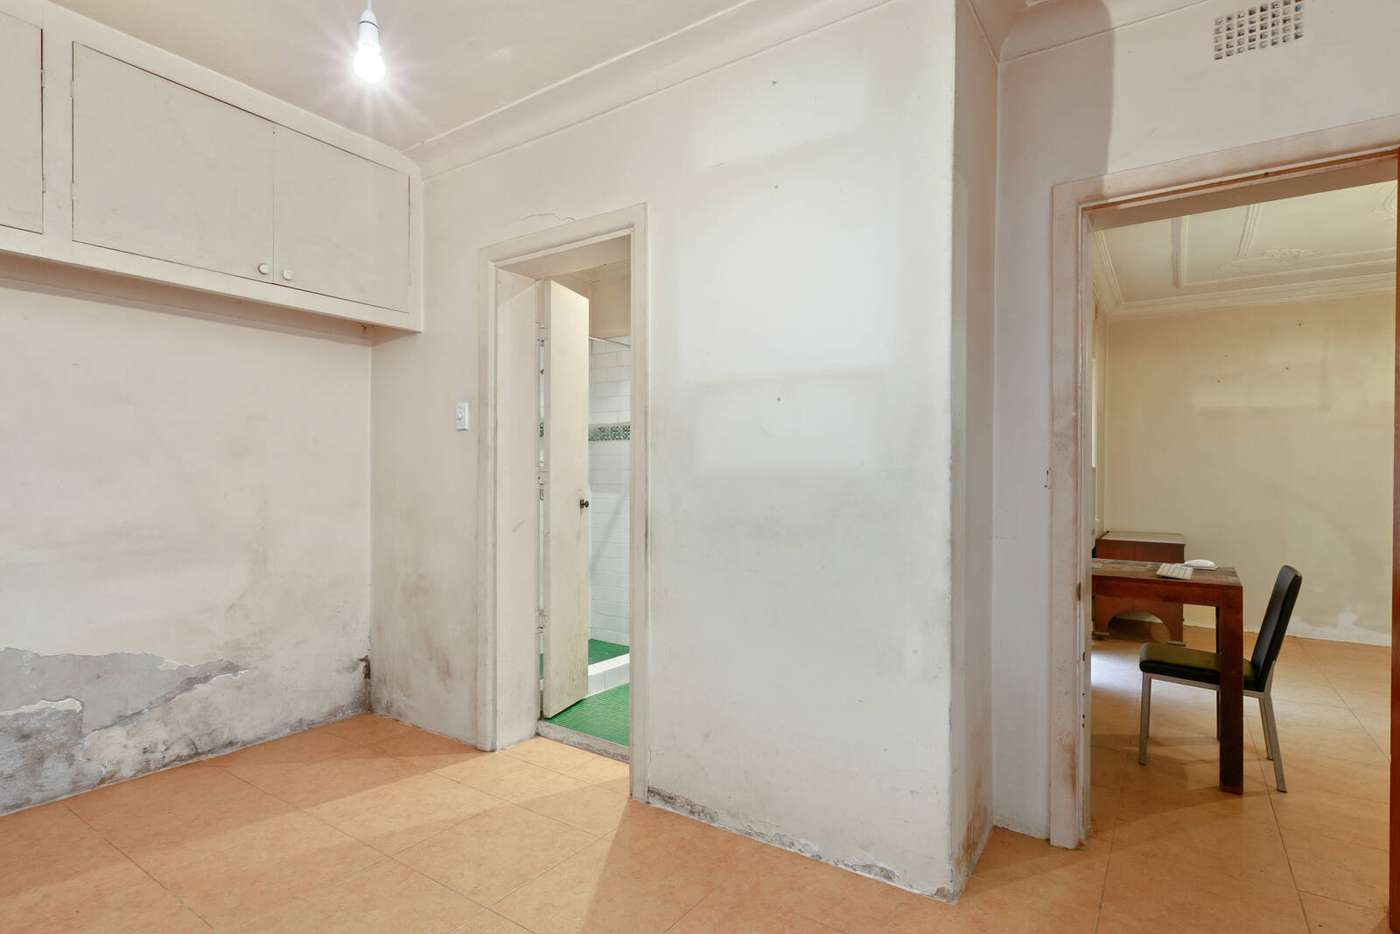 Fifth view of Homely apartment listing, 4/2B Tusculum Street, Potts Point NSW 2011